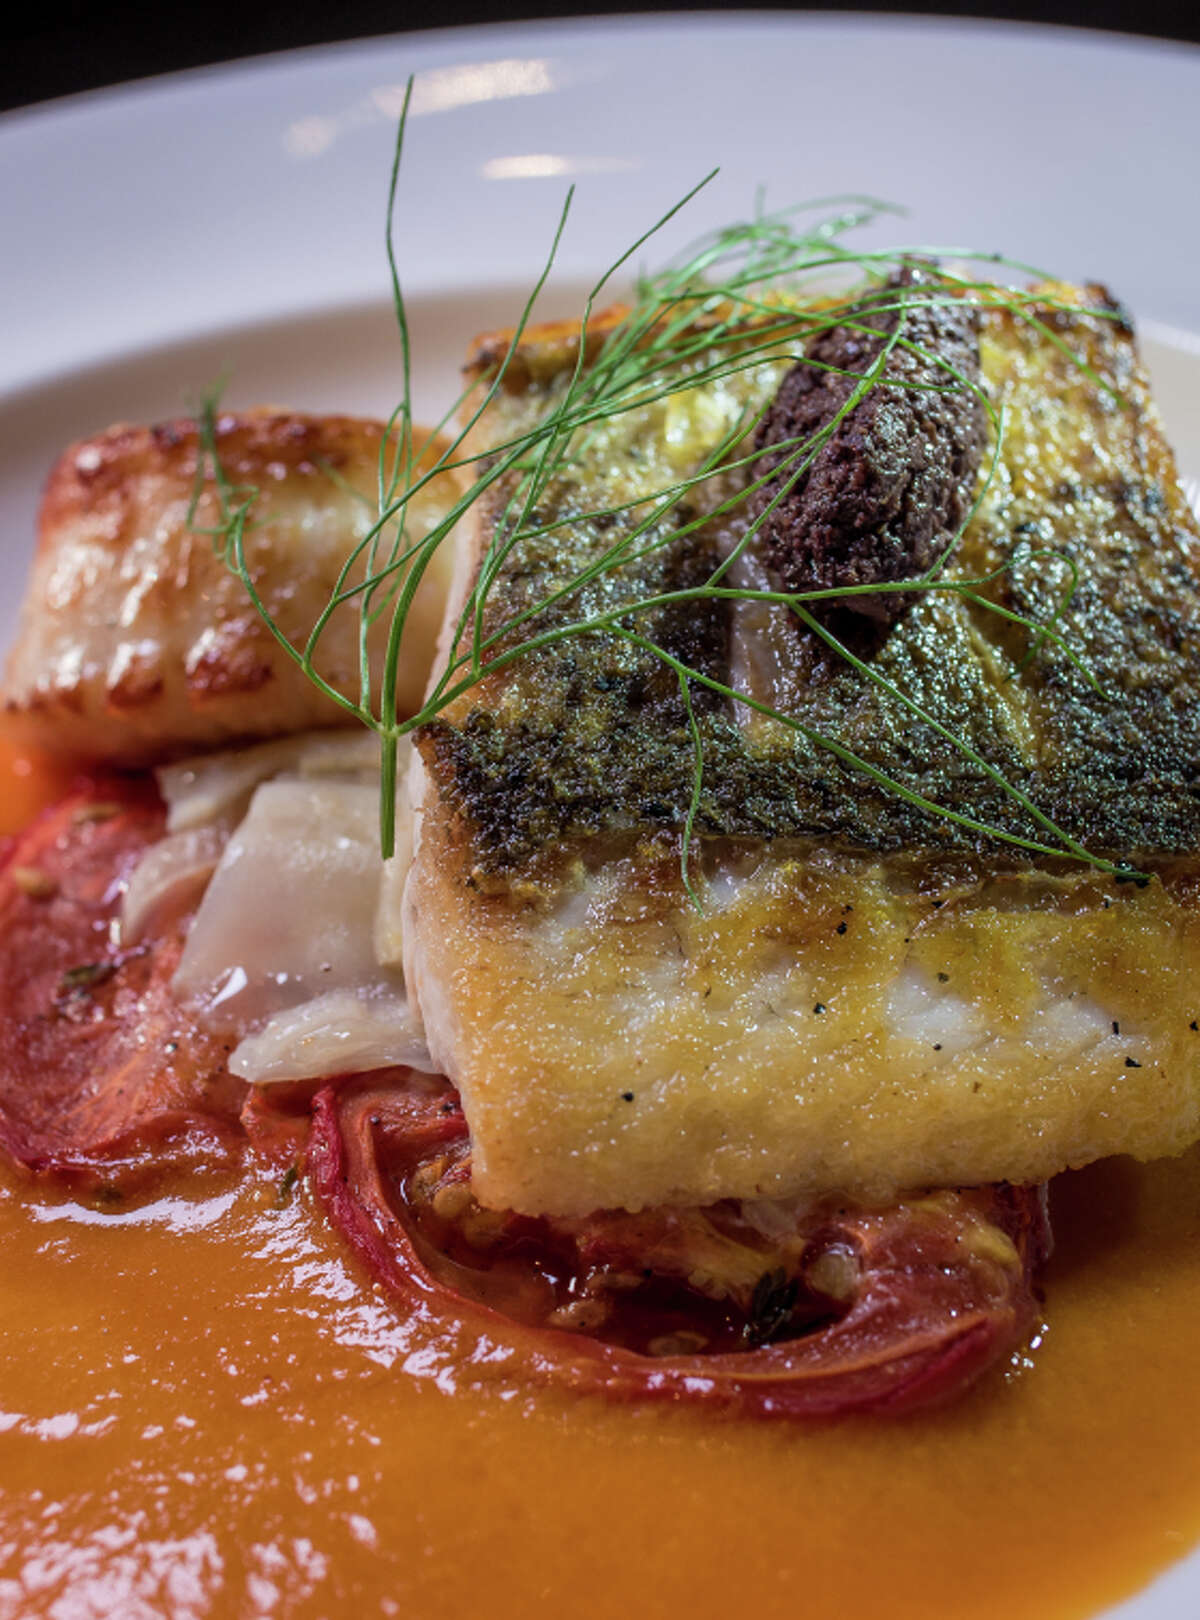 The striped bass and scallop duo at Gaspar in San Francisco.